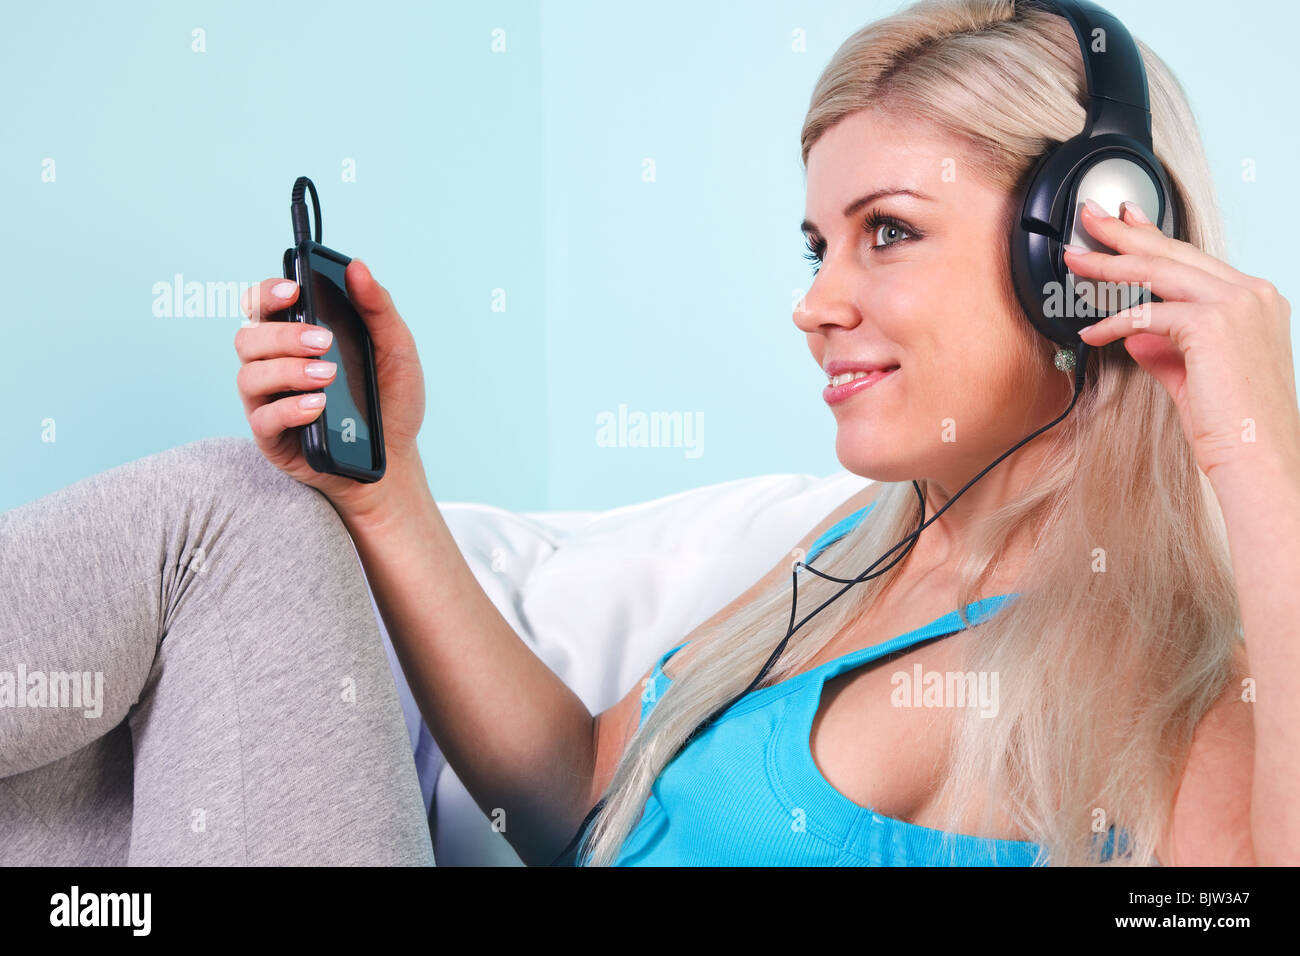 Young blond woman sat in an armchair listening to music on her mp3 player through headphones - Stock Image